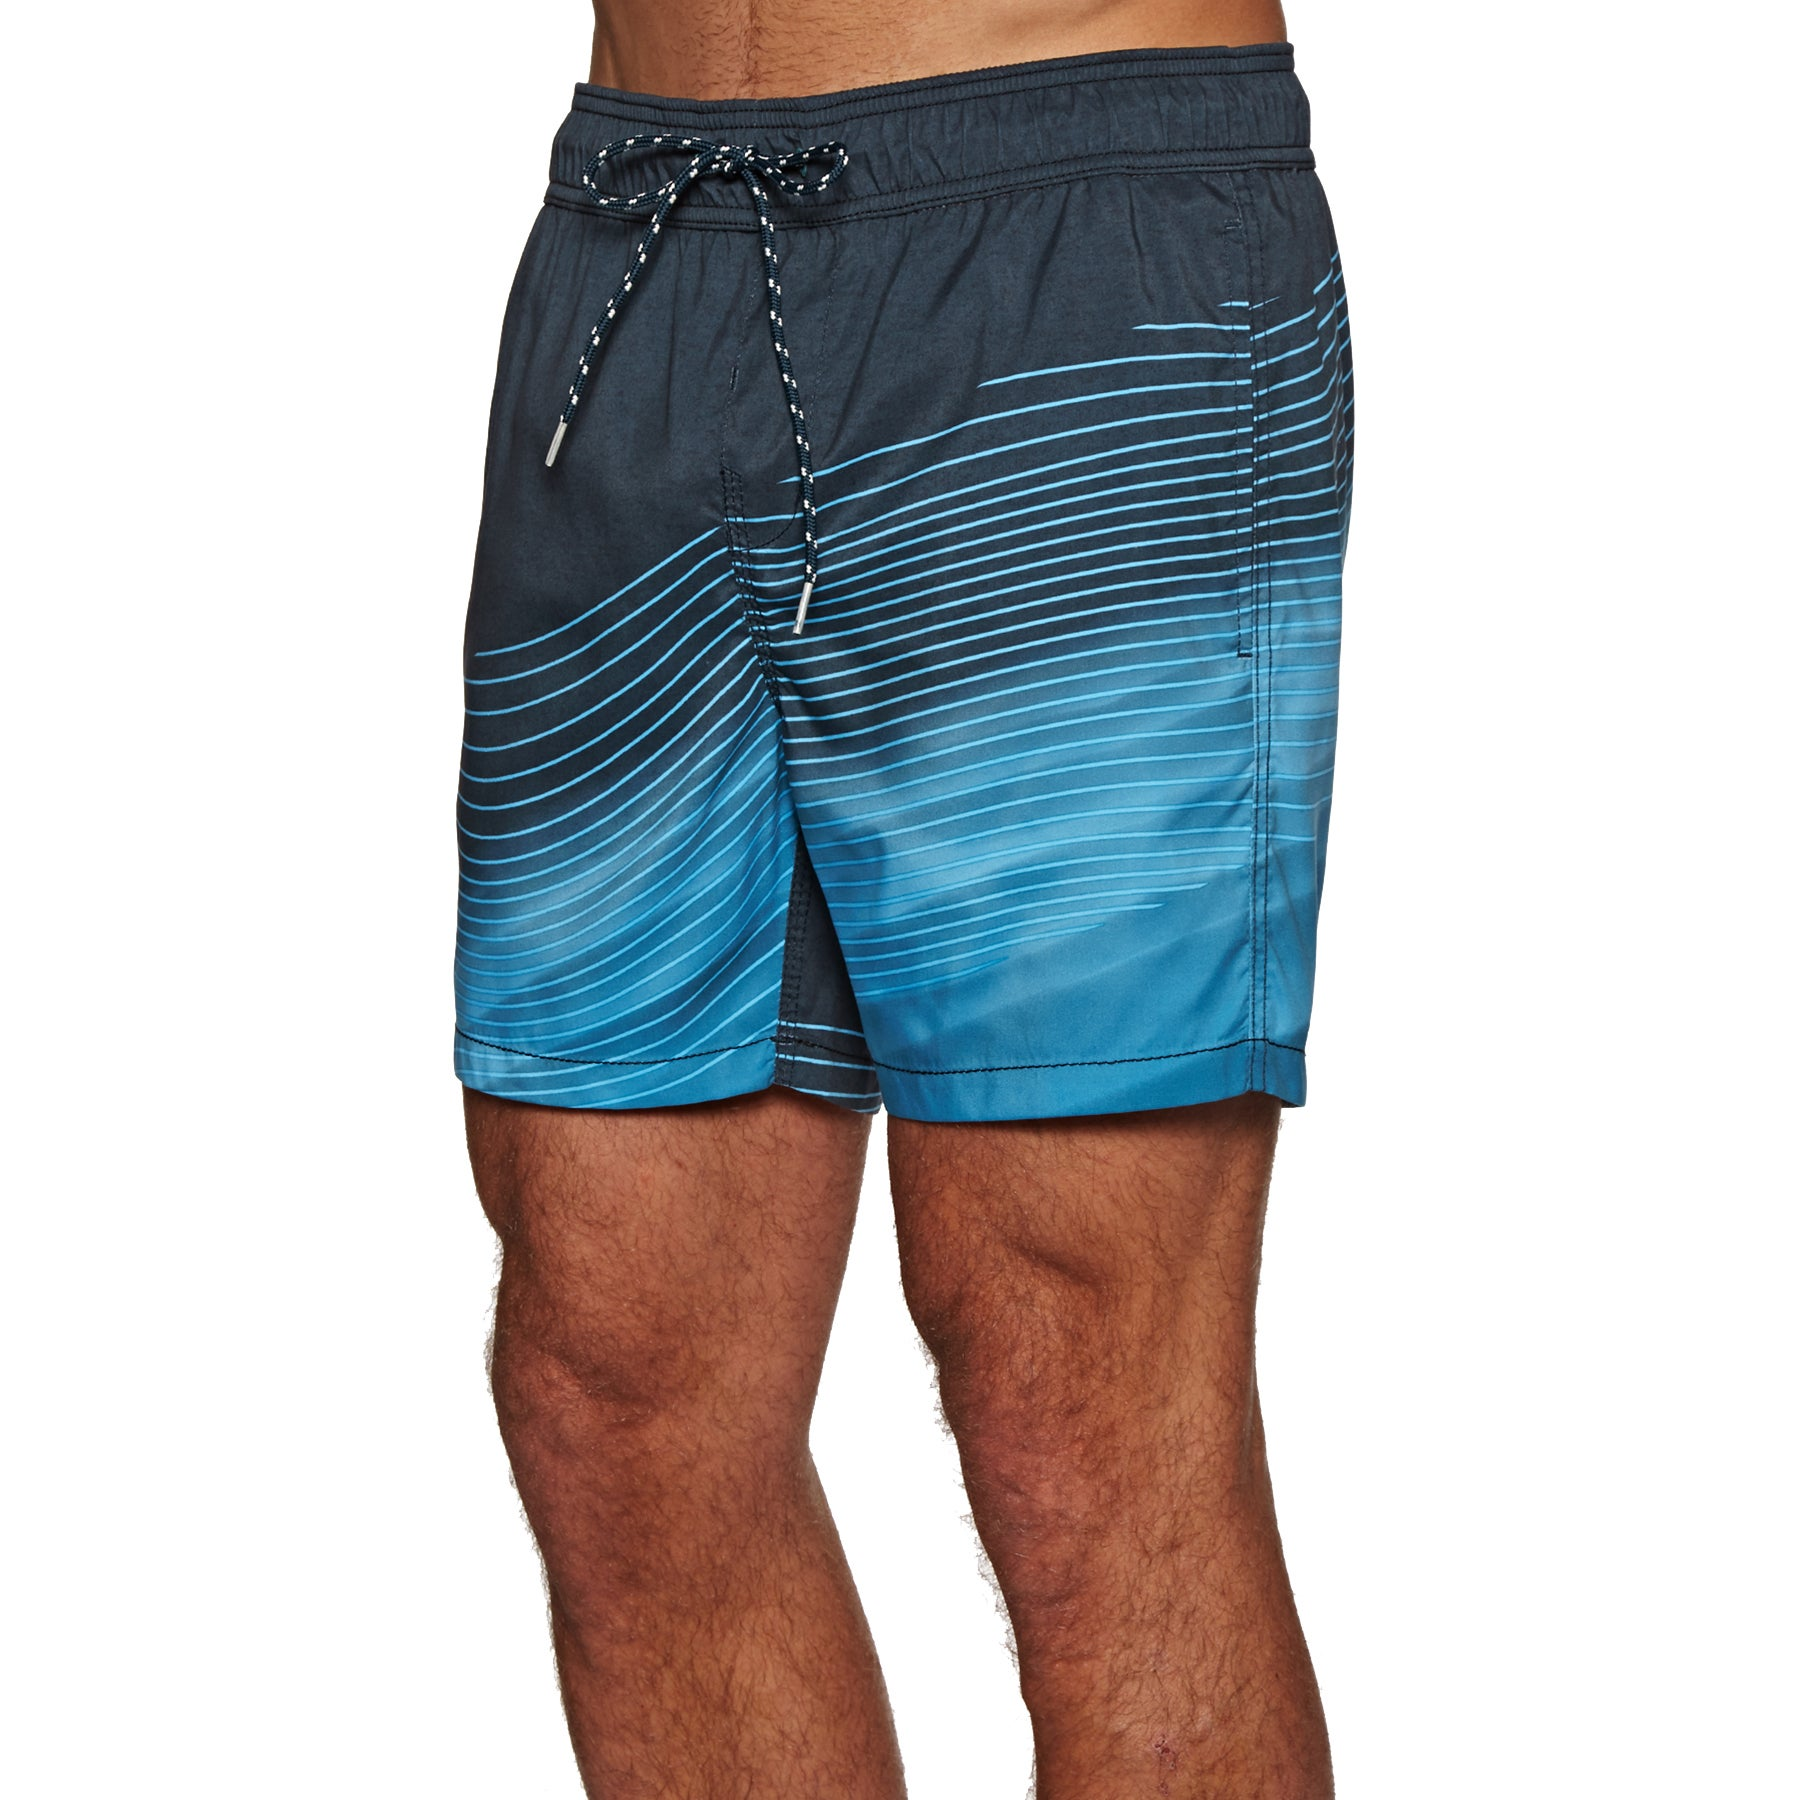 Shorts de surf Billabong Resistance LB 16 inch - Navy